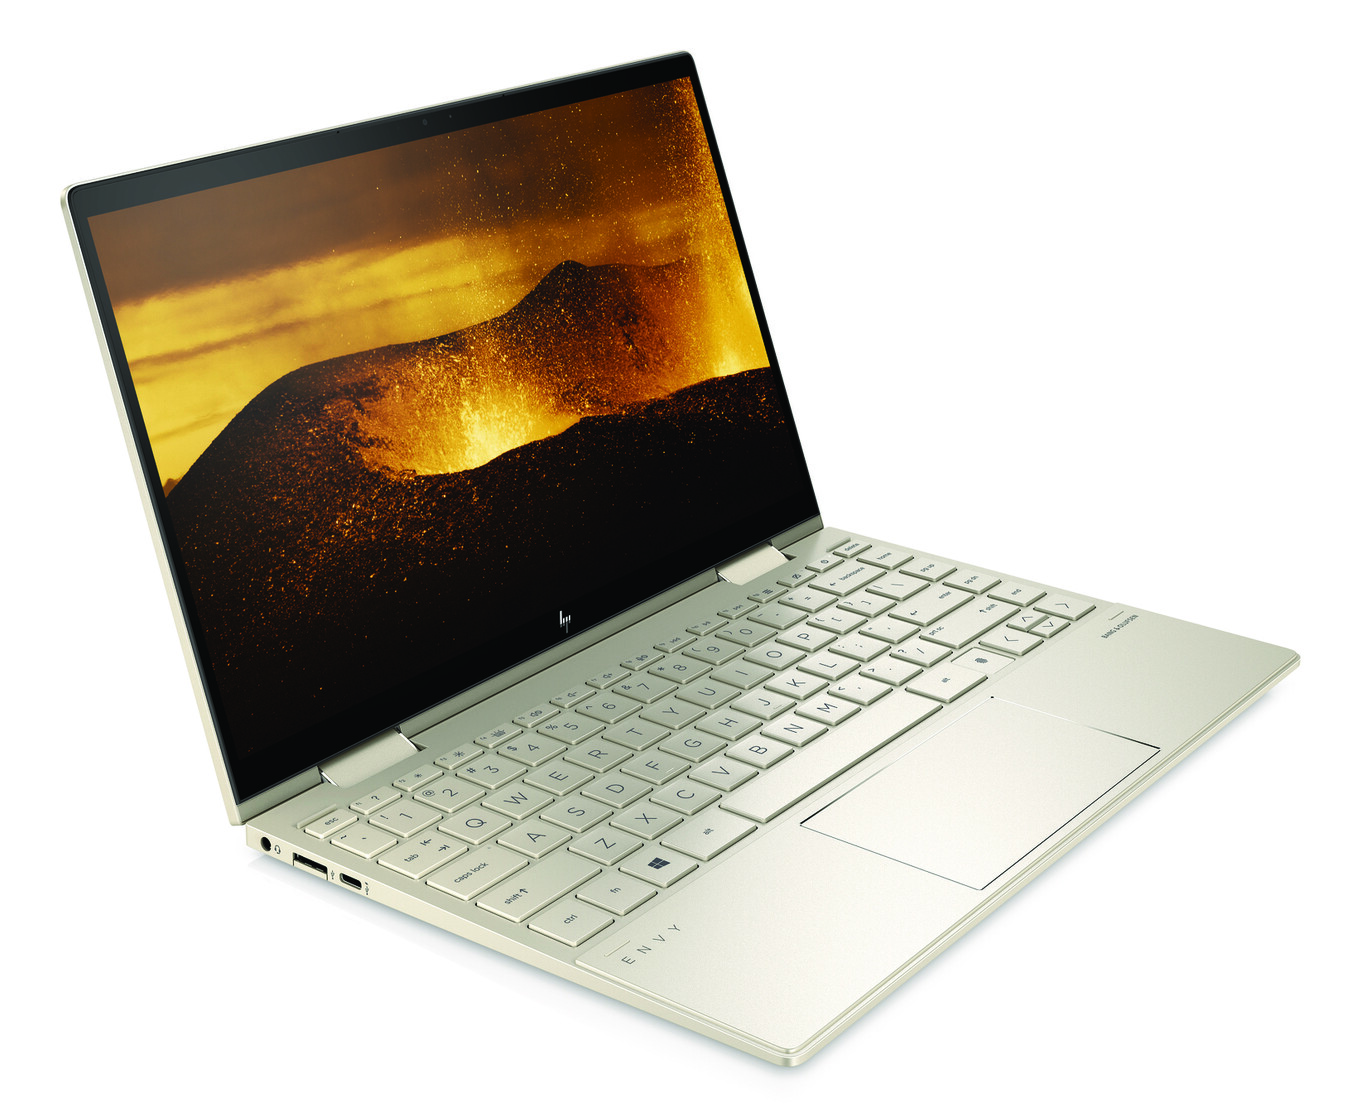 HP ENVY 13 and ENVY x360 13